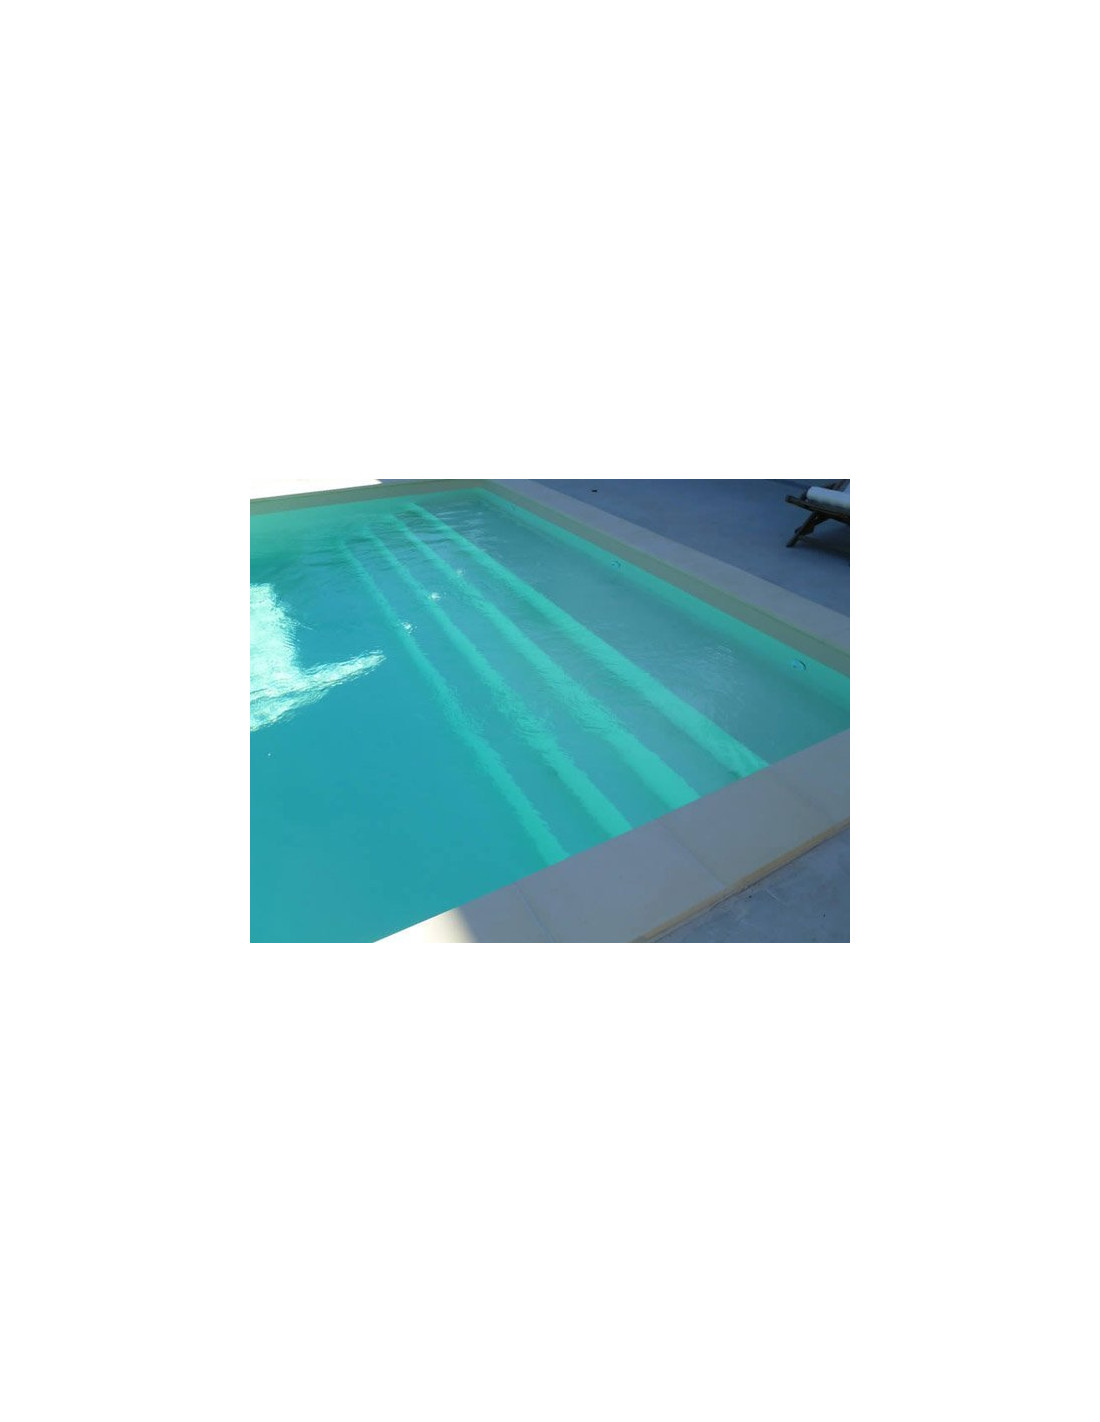 Kit piscine enterr e avec escalier modulo for Kit piscine enterree